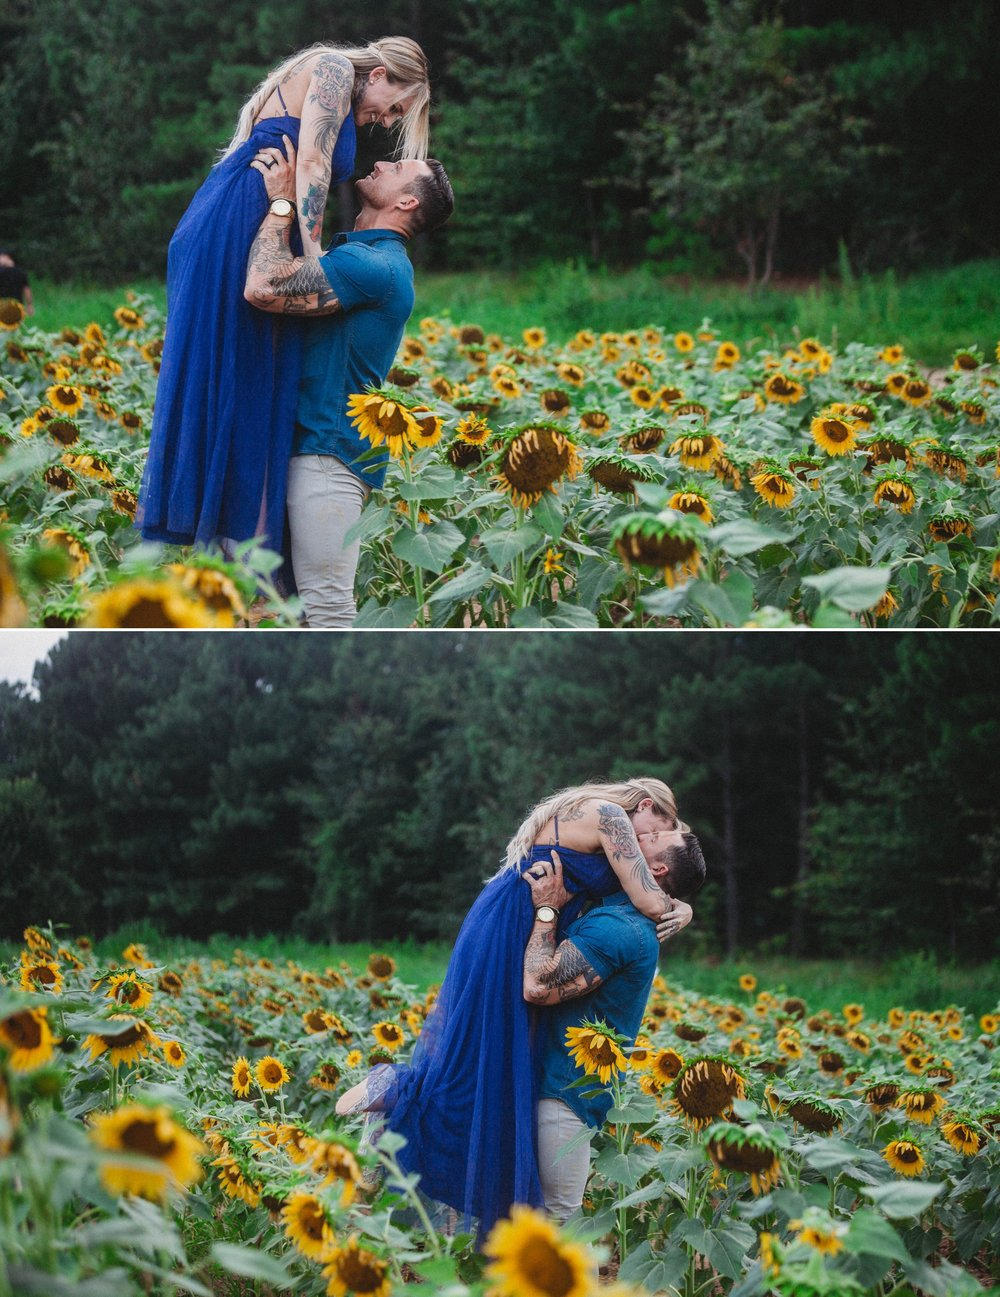 Hannah + Brandon - Wildflower + Sunflower Engagement Session - Raleigh Wedding Photographer